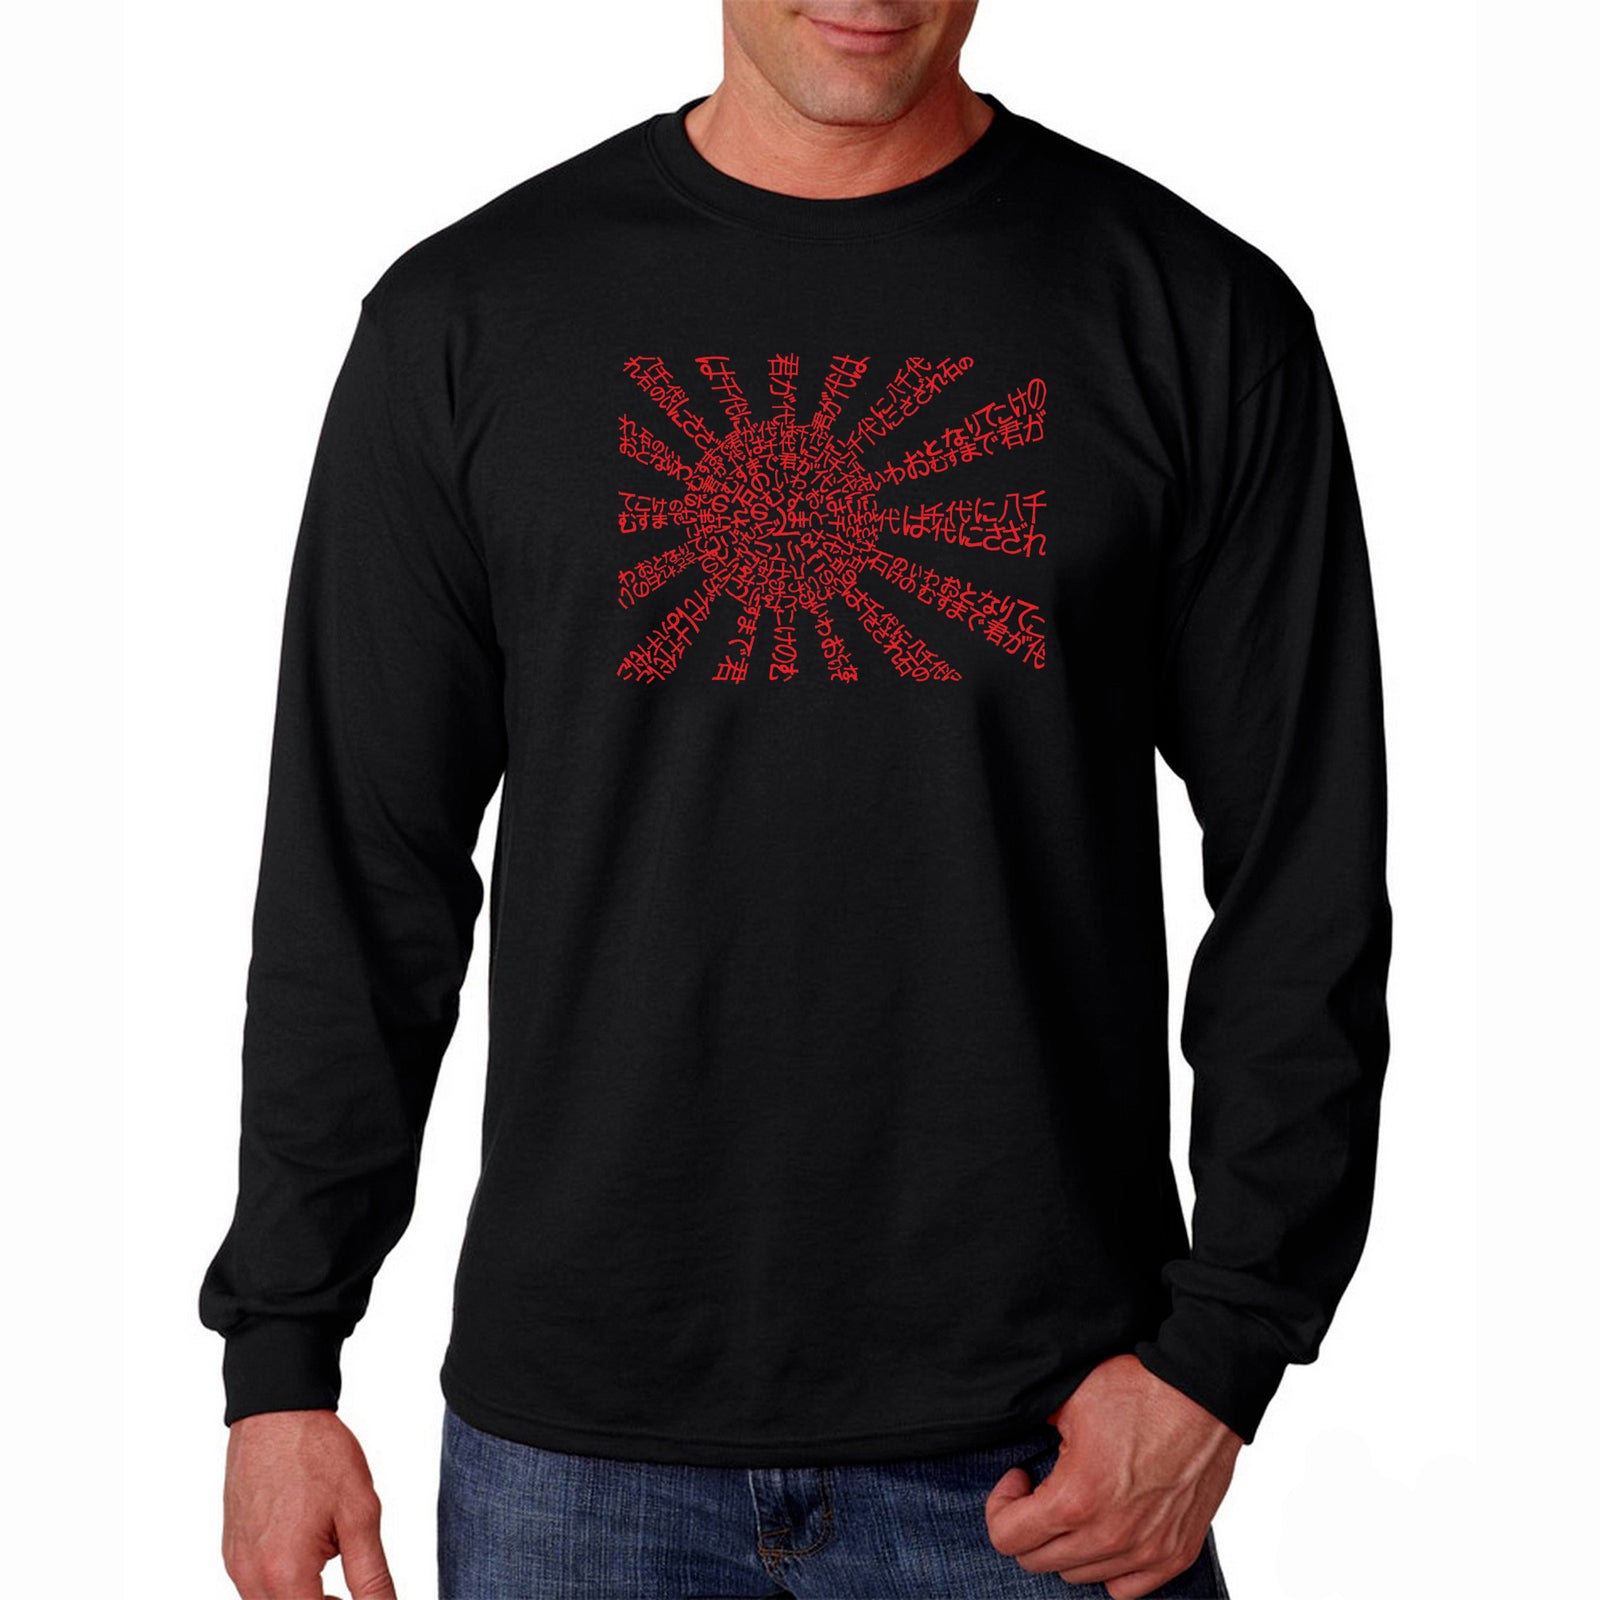 Men's Long Sleeve T-shirt - Lyrics To The Japanese National Anthem